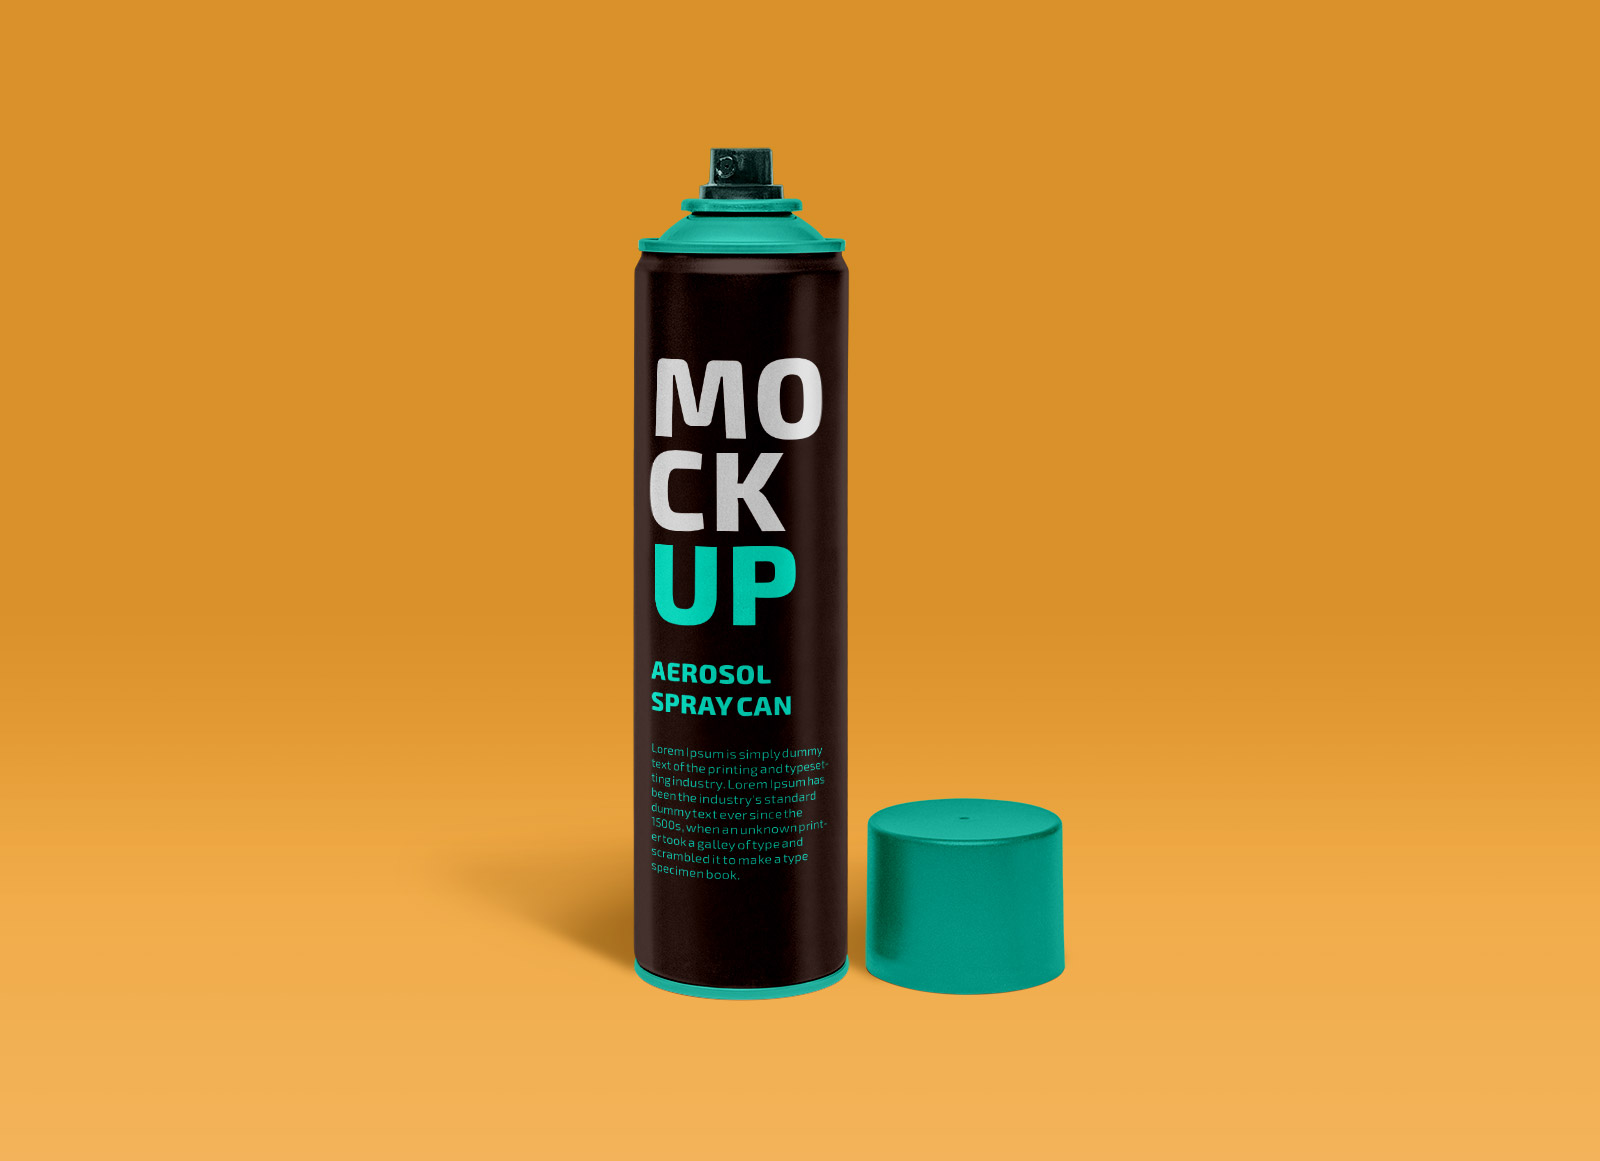 Free-Aerosol-Spray-Can-Mockup-PSD